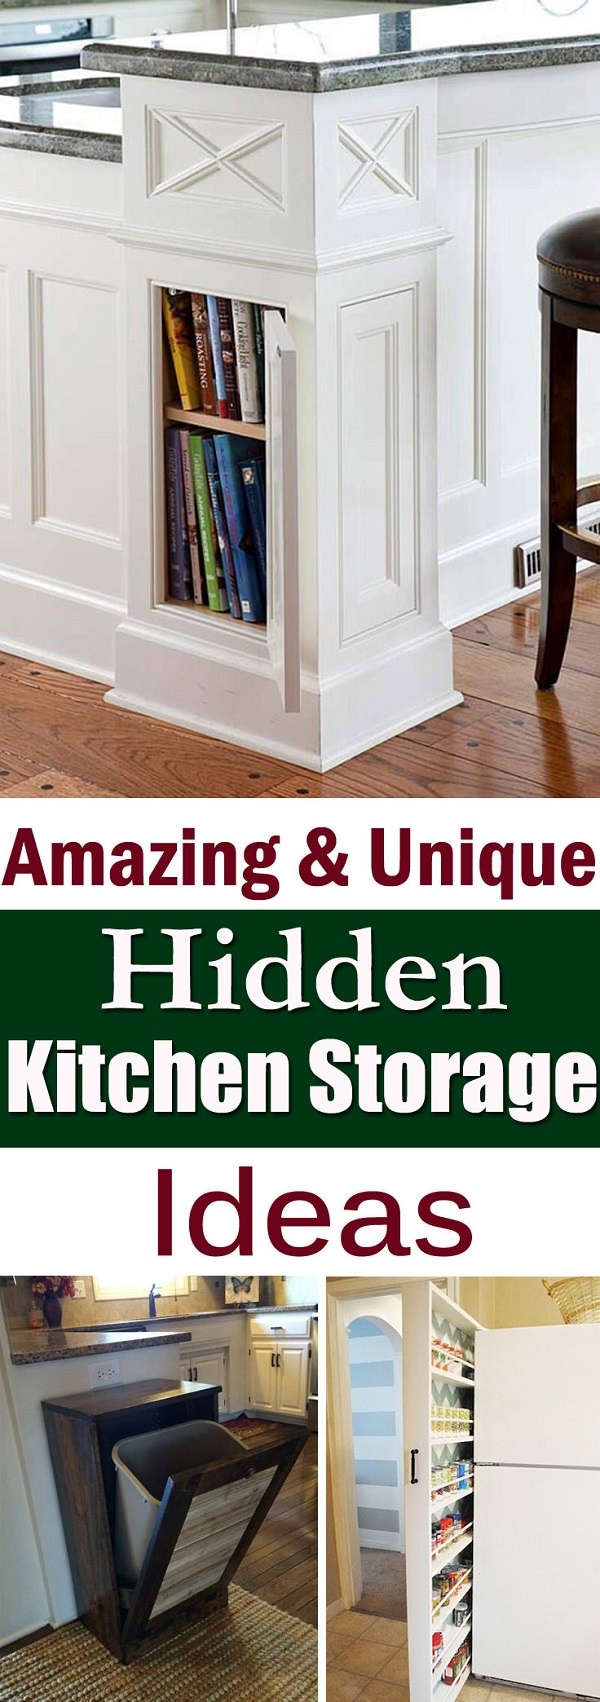 Amazing and unique hidden kitchen storage ideas house good for Hidden kitchen storage ideas